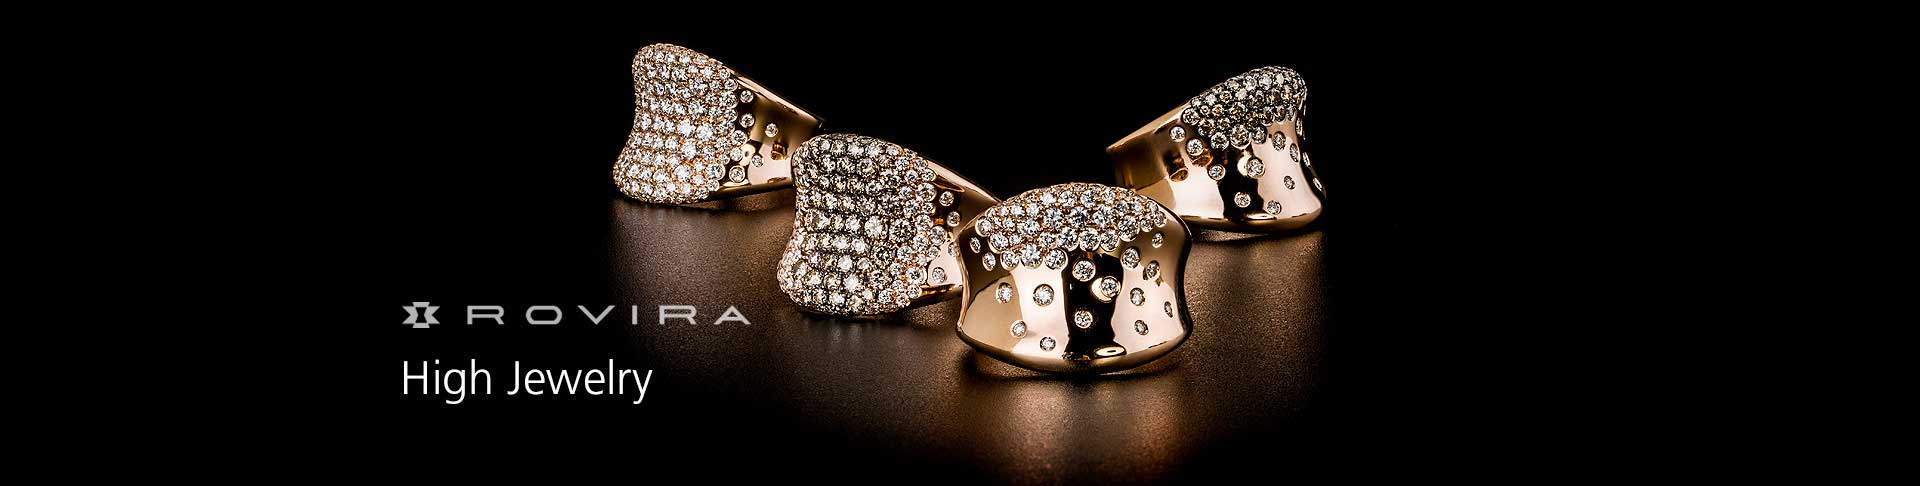 ROVIRA-Slides--high_jewelry-2